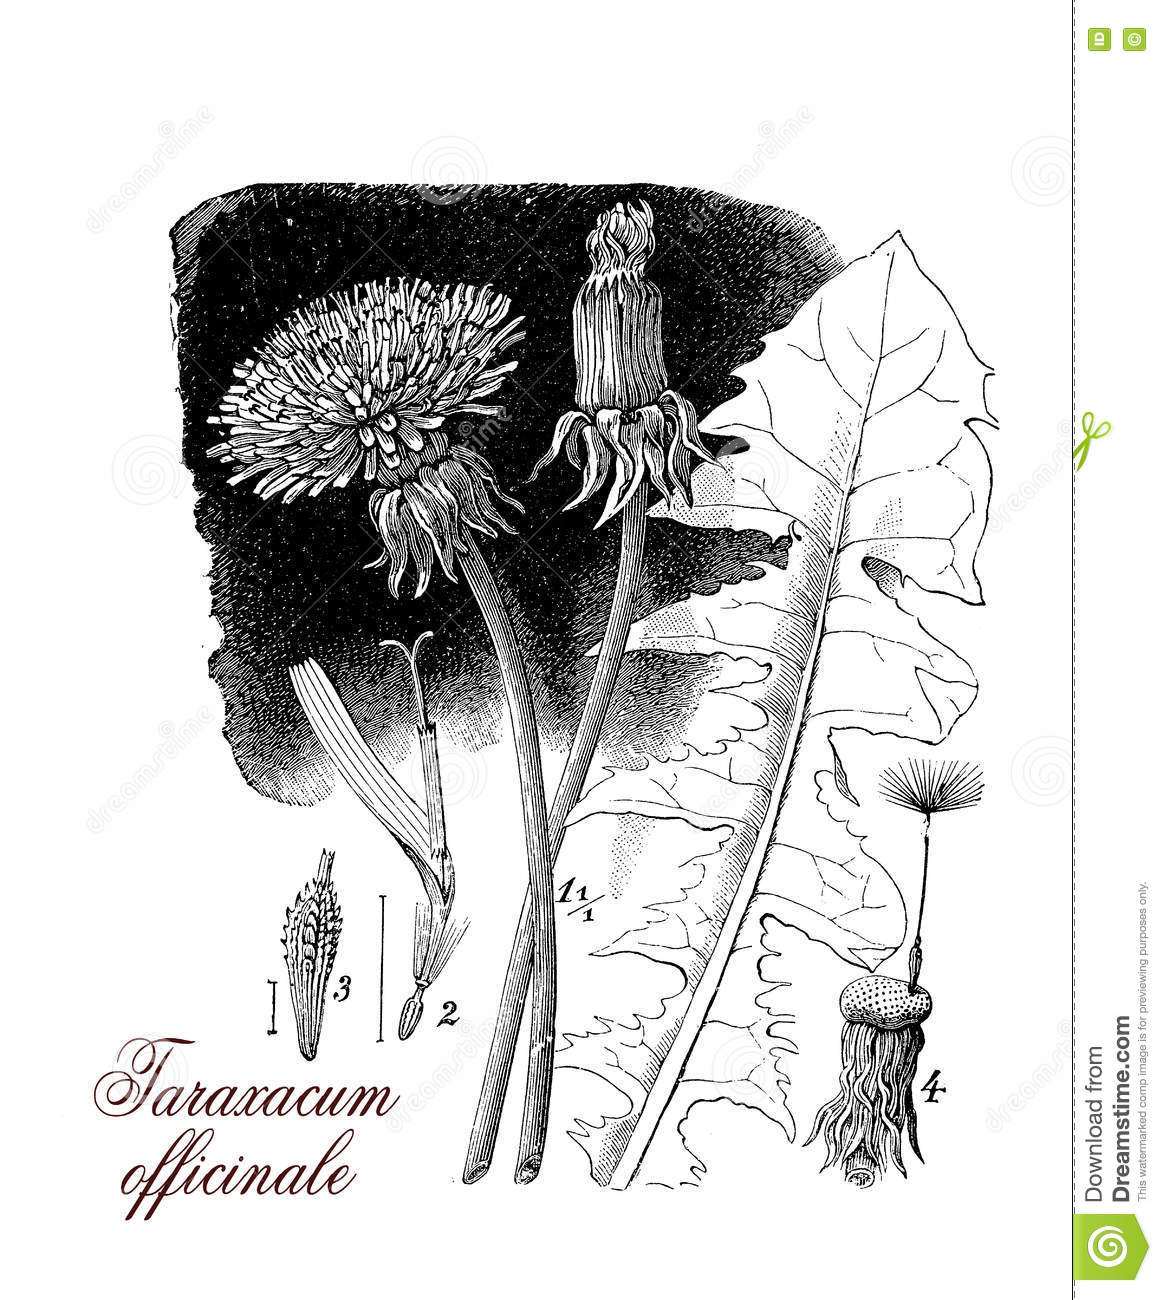 a description and importance of the taraxacum officiale a perennial herb 2 the perennial herb taraxacum officinale  in ways that favour the spread of other non-native species  of the importance of facilitation by native .